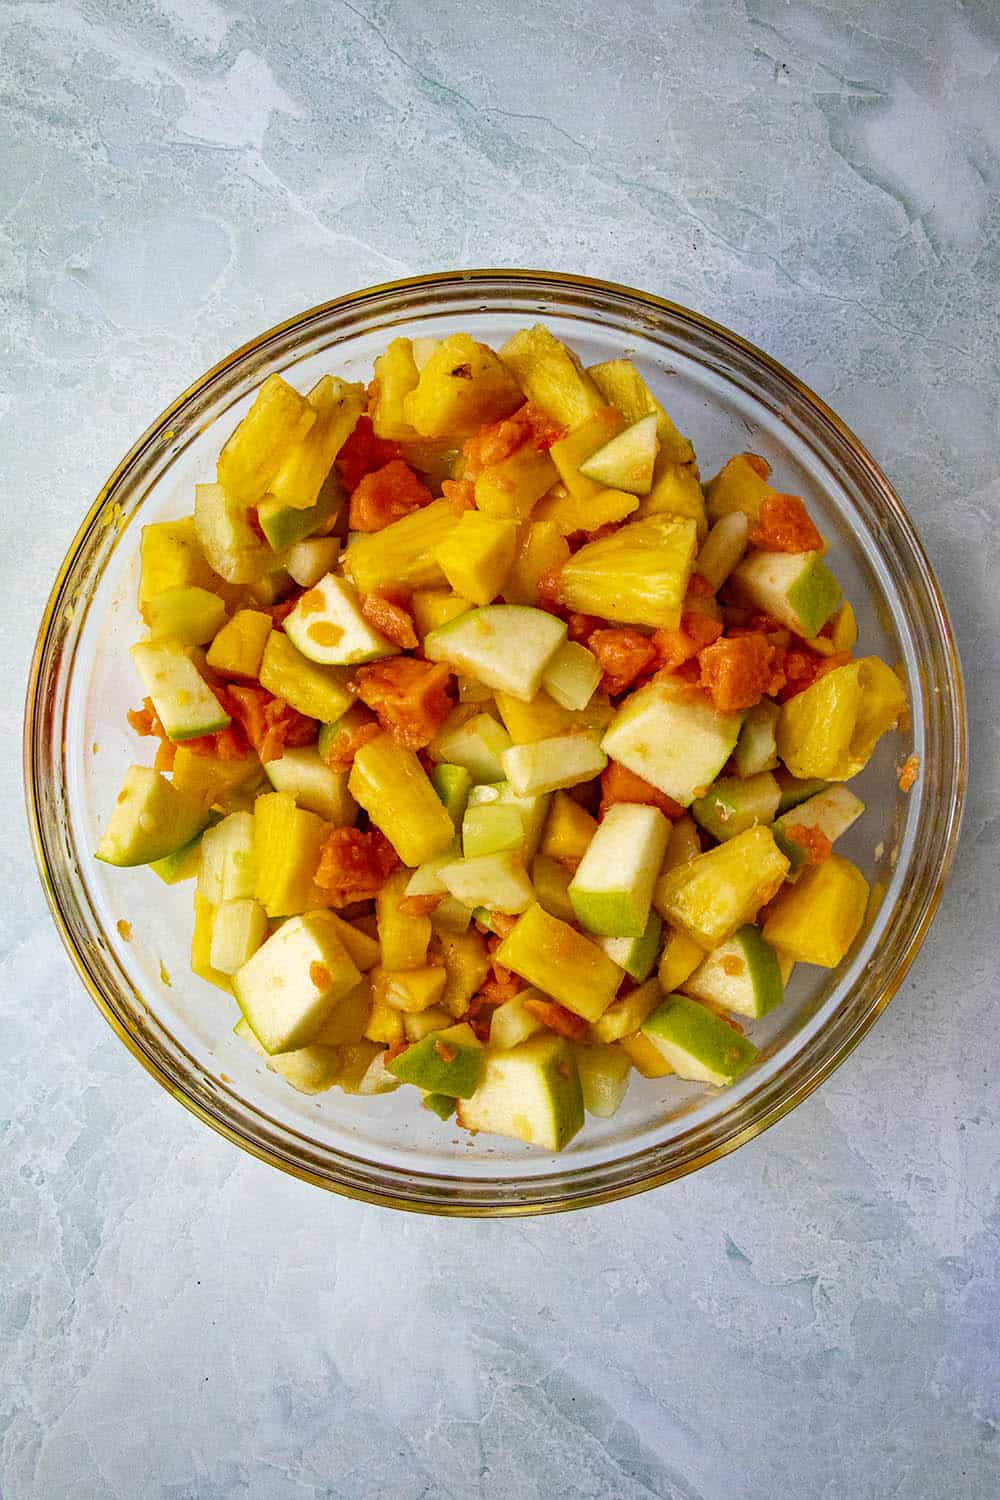 Rujak ingredients mixed into a bowl